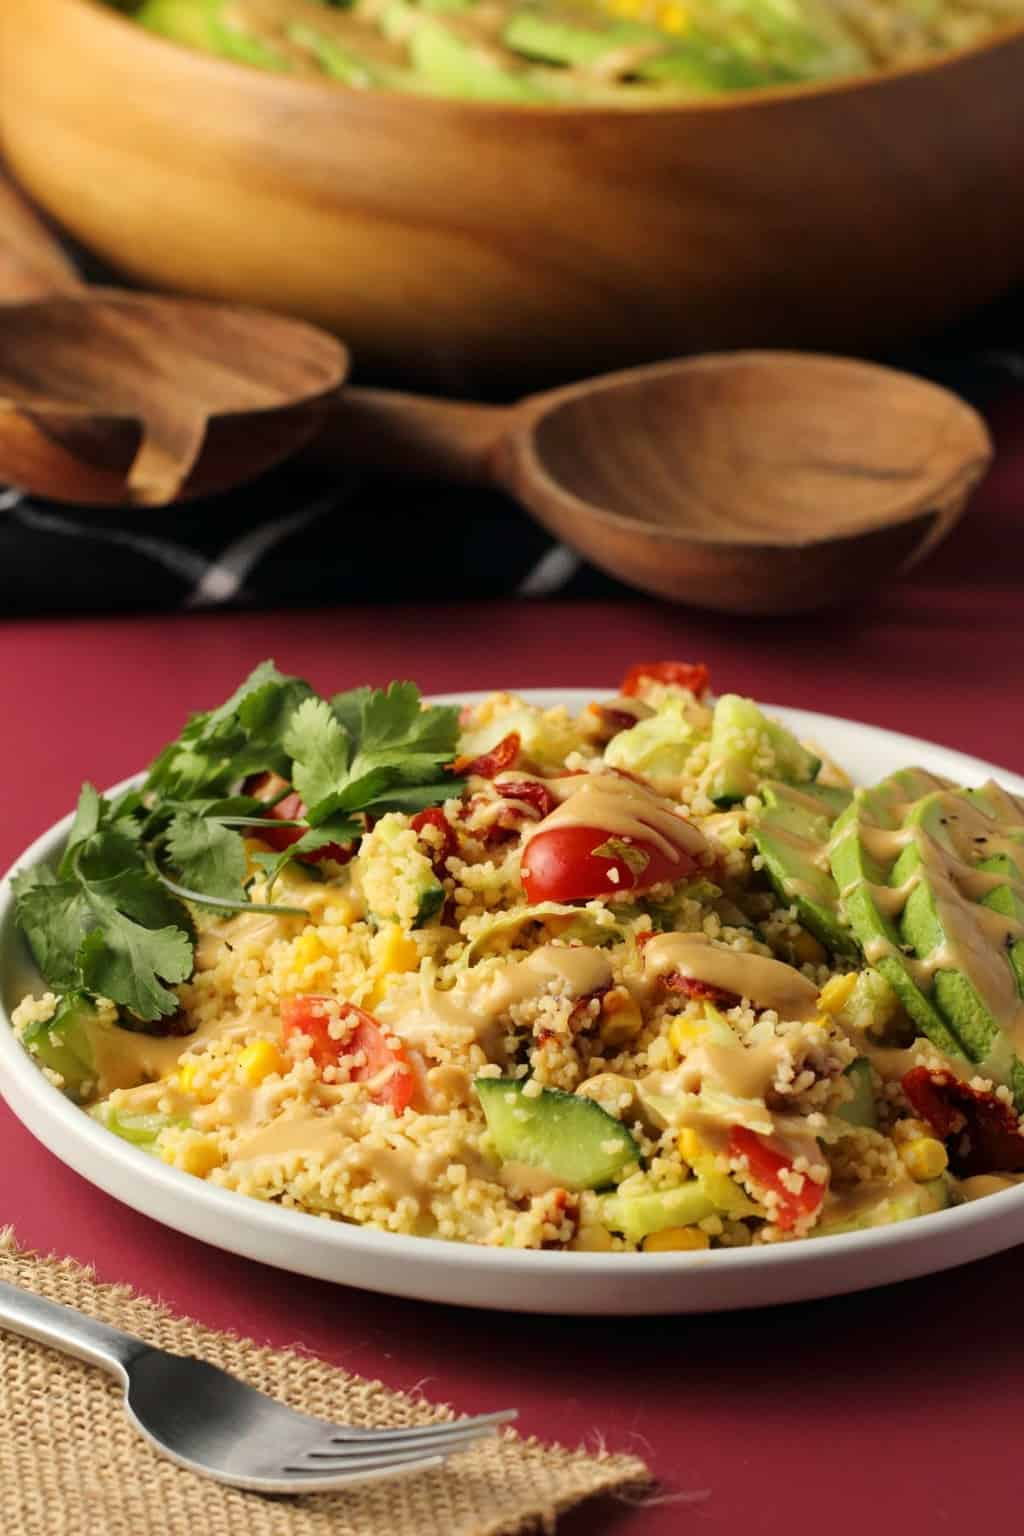 Vegan couscous salad topped with tahini dressing on a white plate.